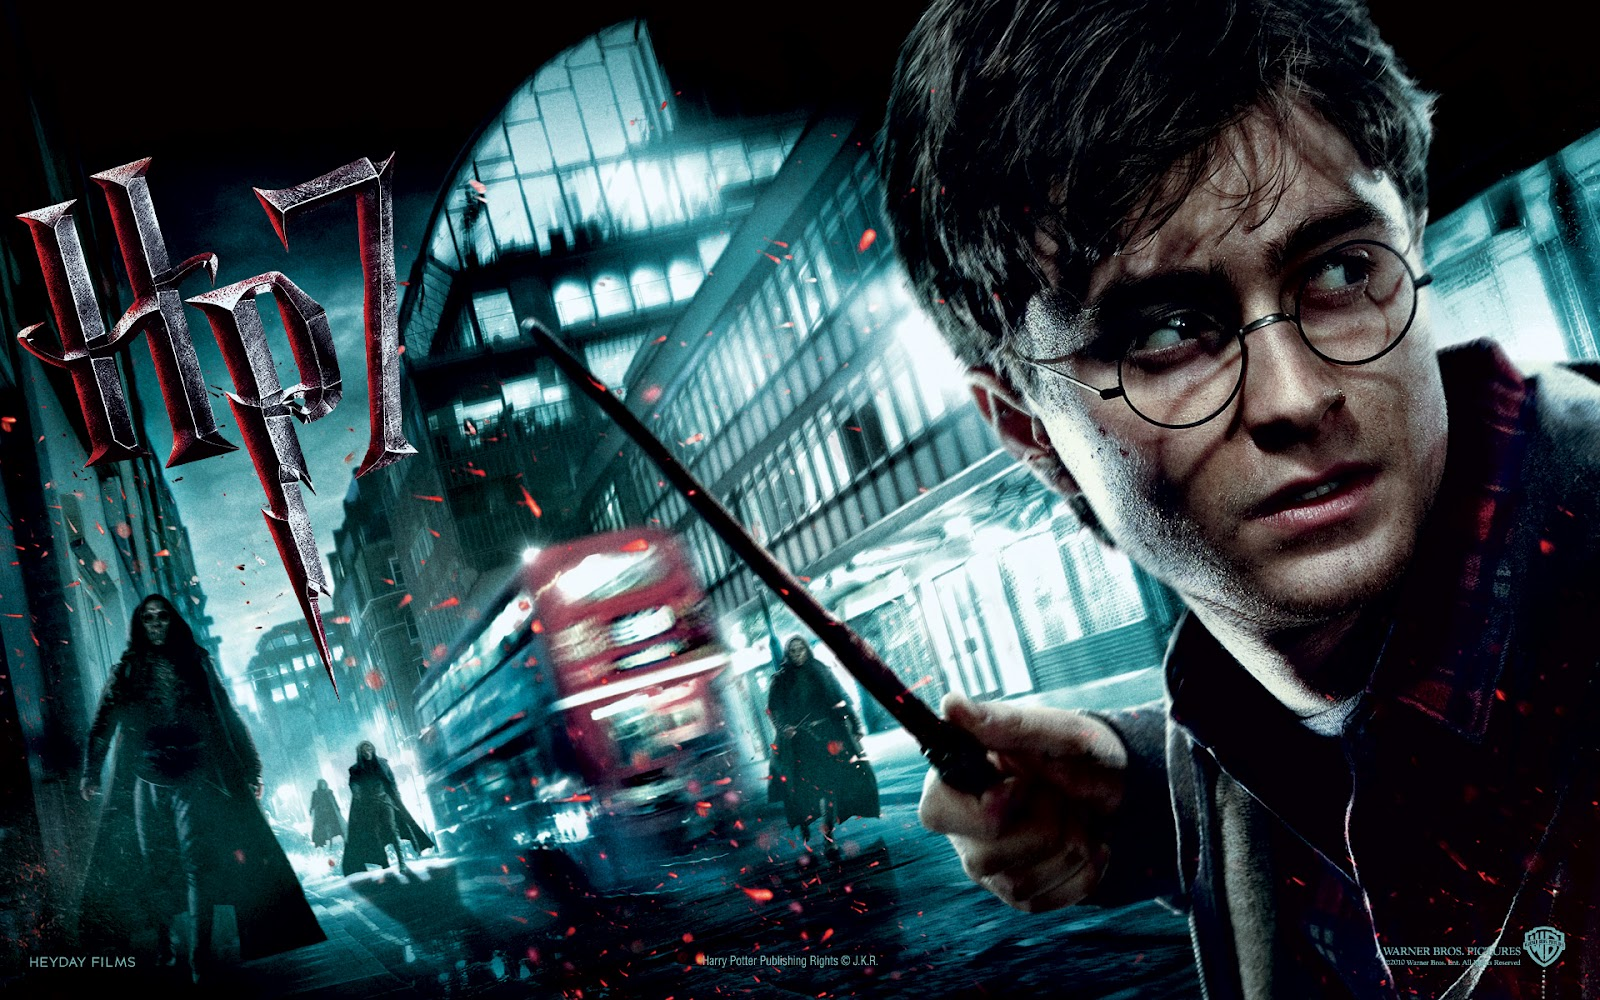 http://4.bp.blogspot.com/--glUP3vMRFM/T_6-8ZMfQkI/AAAAAAAAAKg/BbuKmEqEEik/s1600/Daniel_Radcliffe_in_Harry_Potter_and_the_Deathly_Hallows__Part_I_Wallpaper_18_1280.jpg